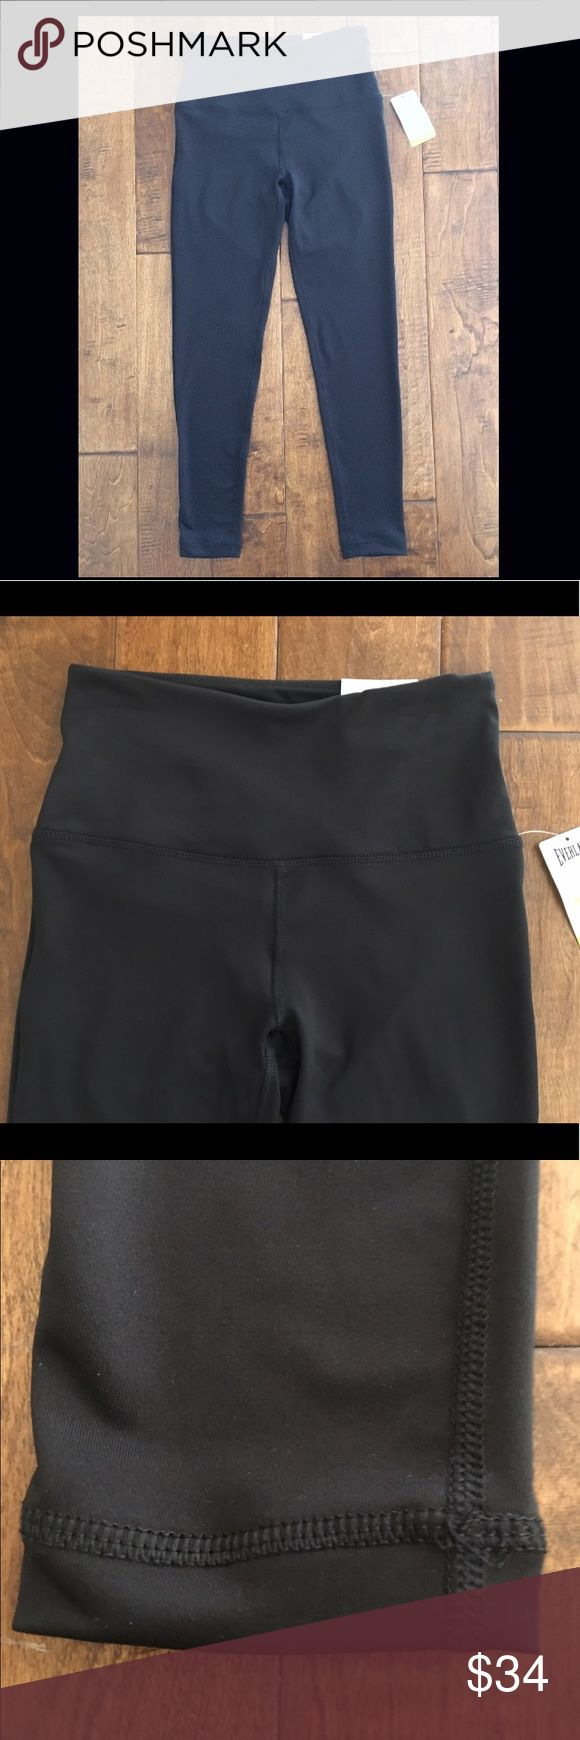 NWT Active Leggings • Everlast High Waist Active Leggings •   • NWT  • Best fit for slender legs, as shown in Model Photo • Slimming Fit  • Tummy Control High Waist  • Sweat Wicking Material  • Full length  • Size Small Everlast Pants Leggings